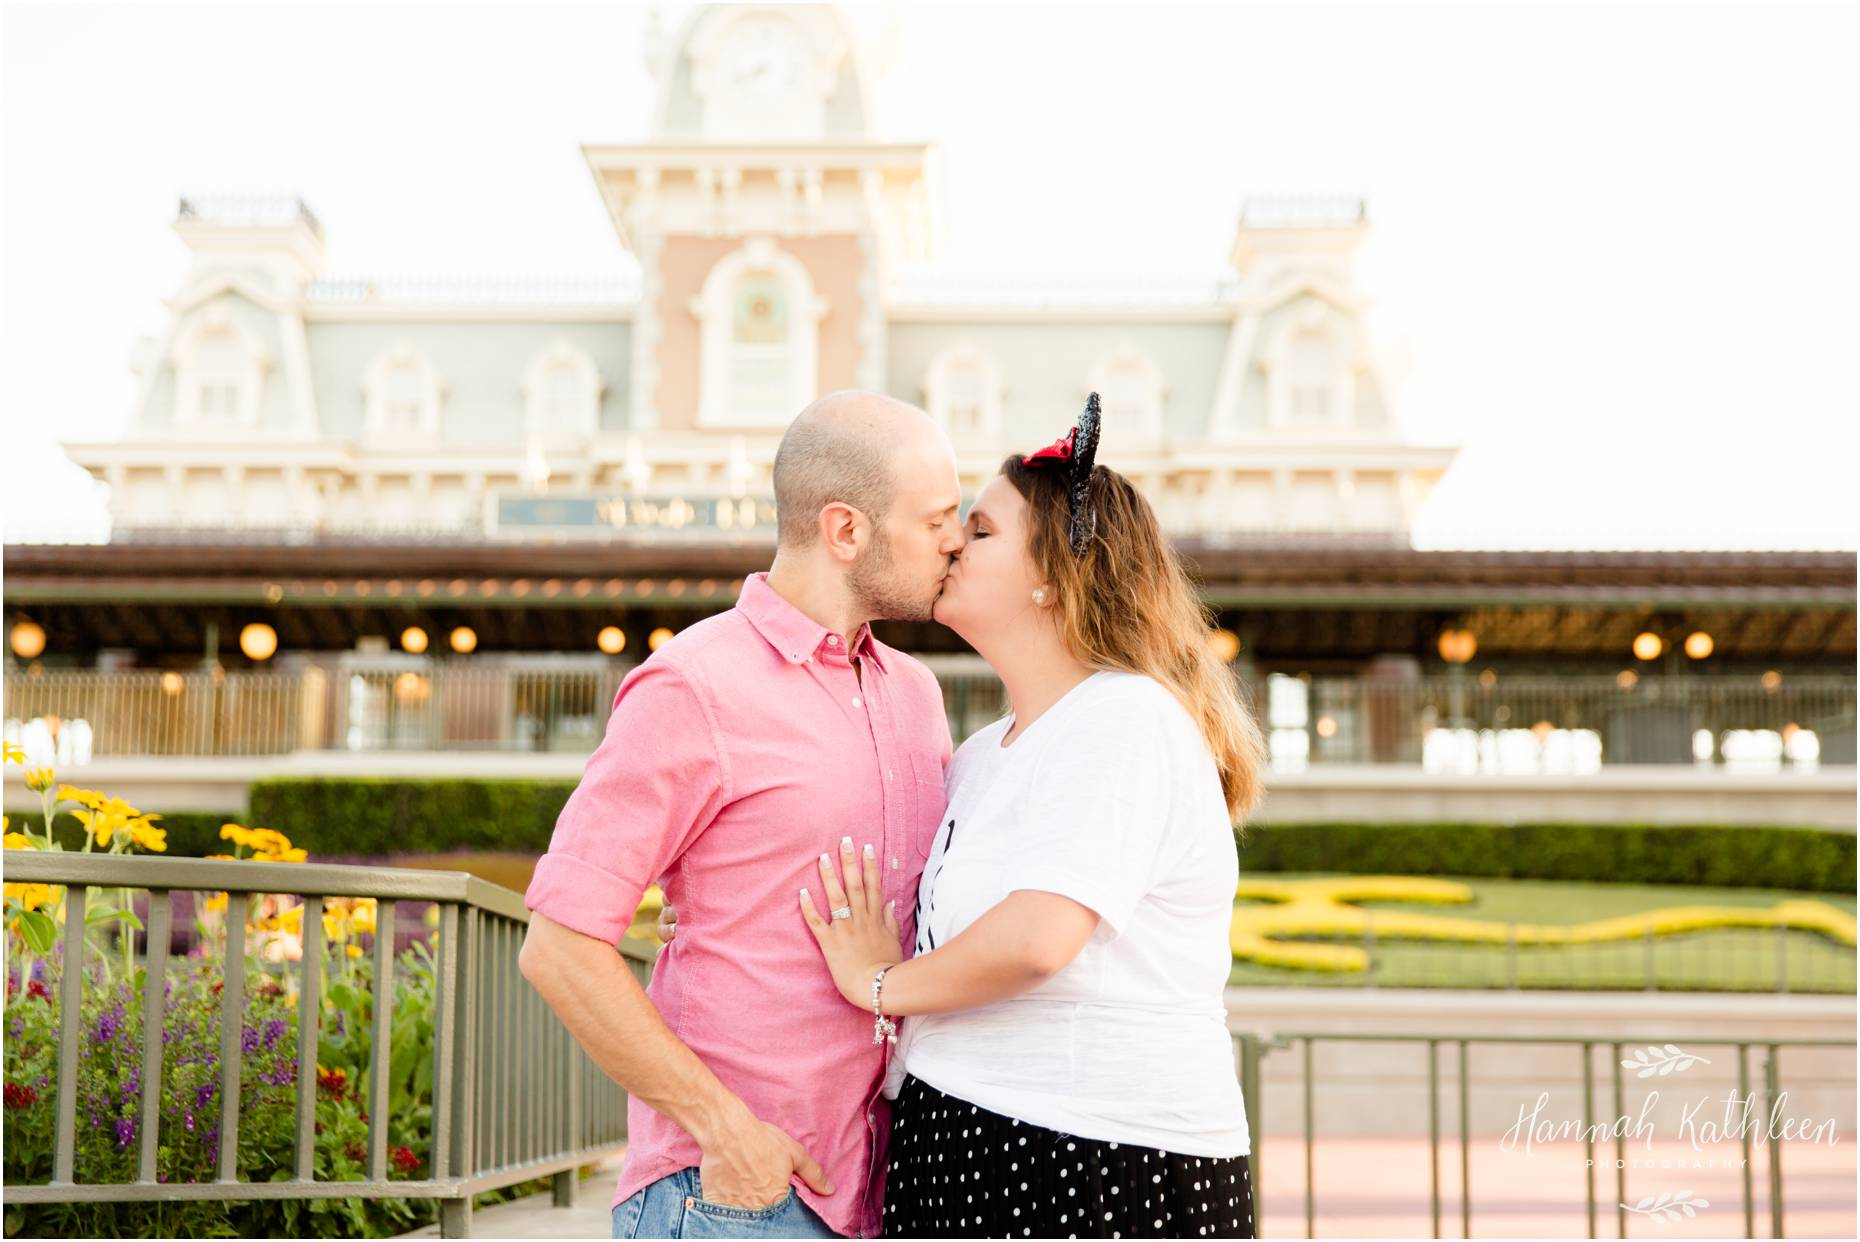 Abbott_Magic_Kingdom_Disney_World_Family_Photography